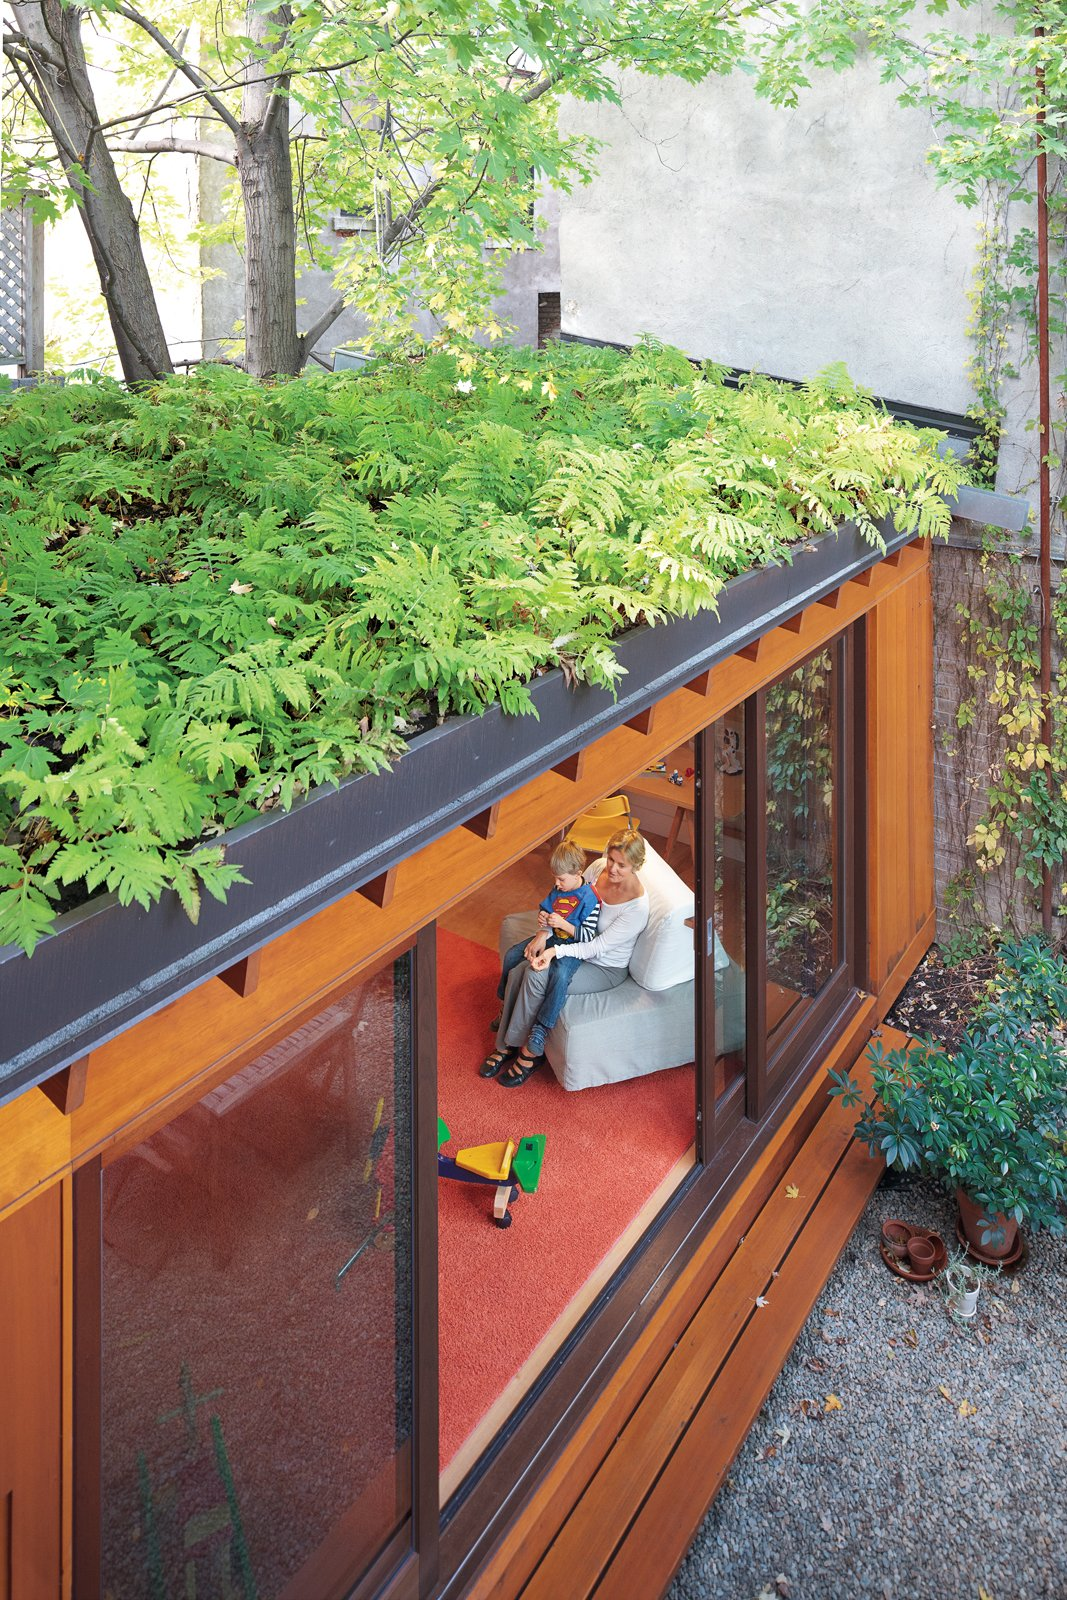 A green roof also helps makes up for lost garden beds, while creating attractive, leafy views from the second and third floors. In summer, when the sliding doors are left wide open, indoor and outdoor spaces blend together. Tagged: Exterior, House, and Green Roof Material. These 10 Green Roofs Bring Life—and So Much More—to These Modern Structures - Photo 4 of 12